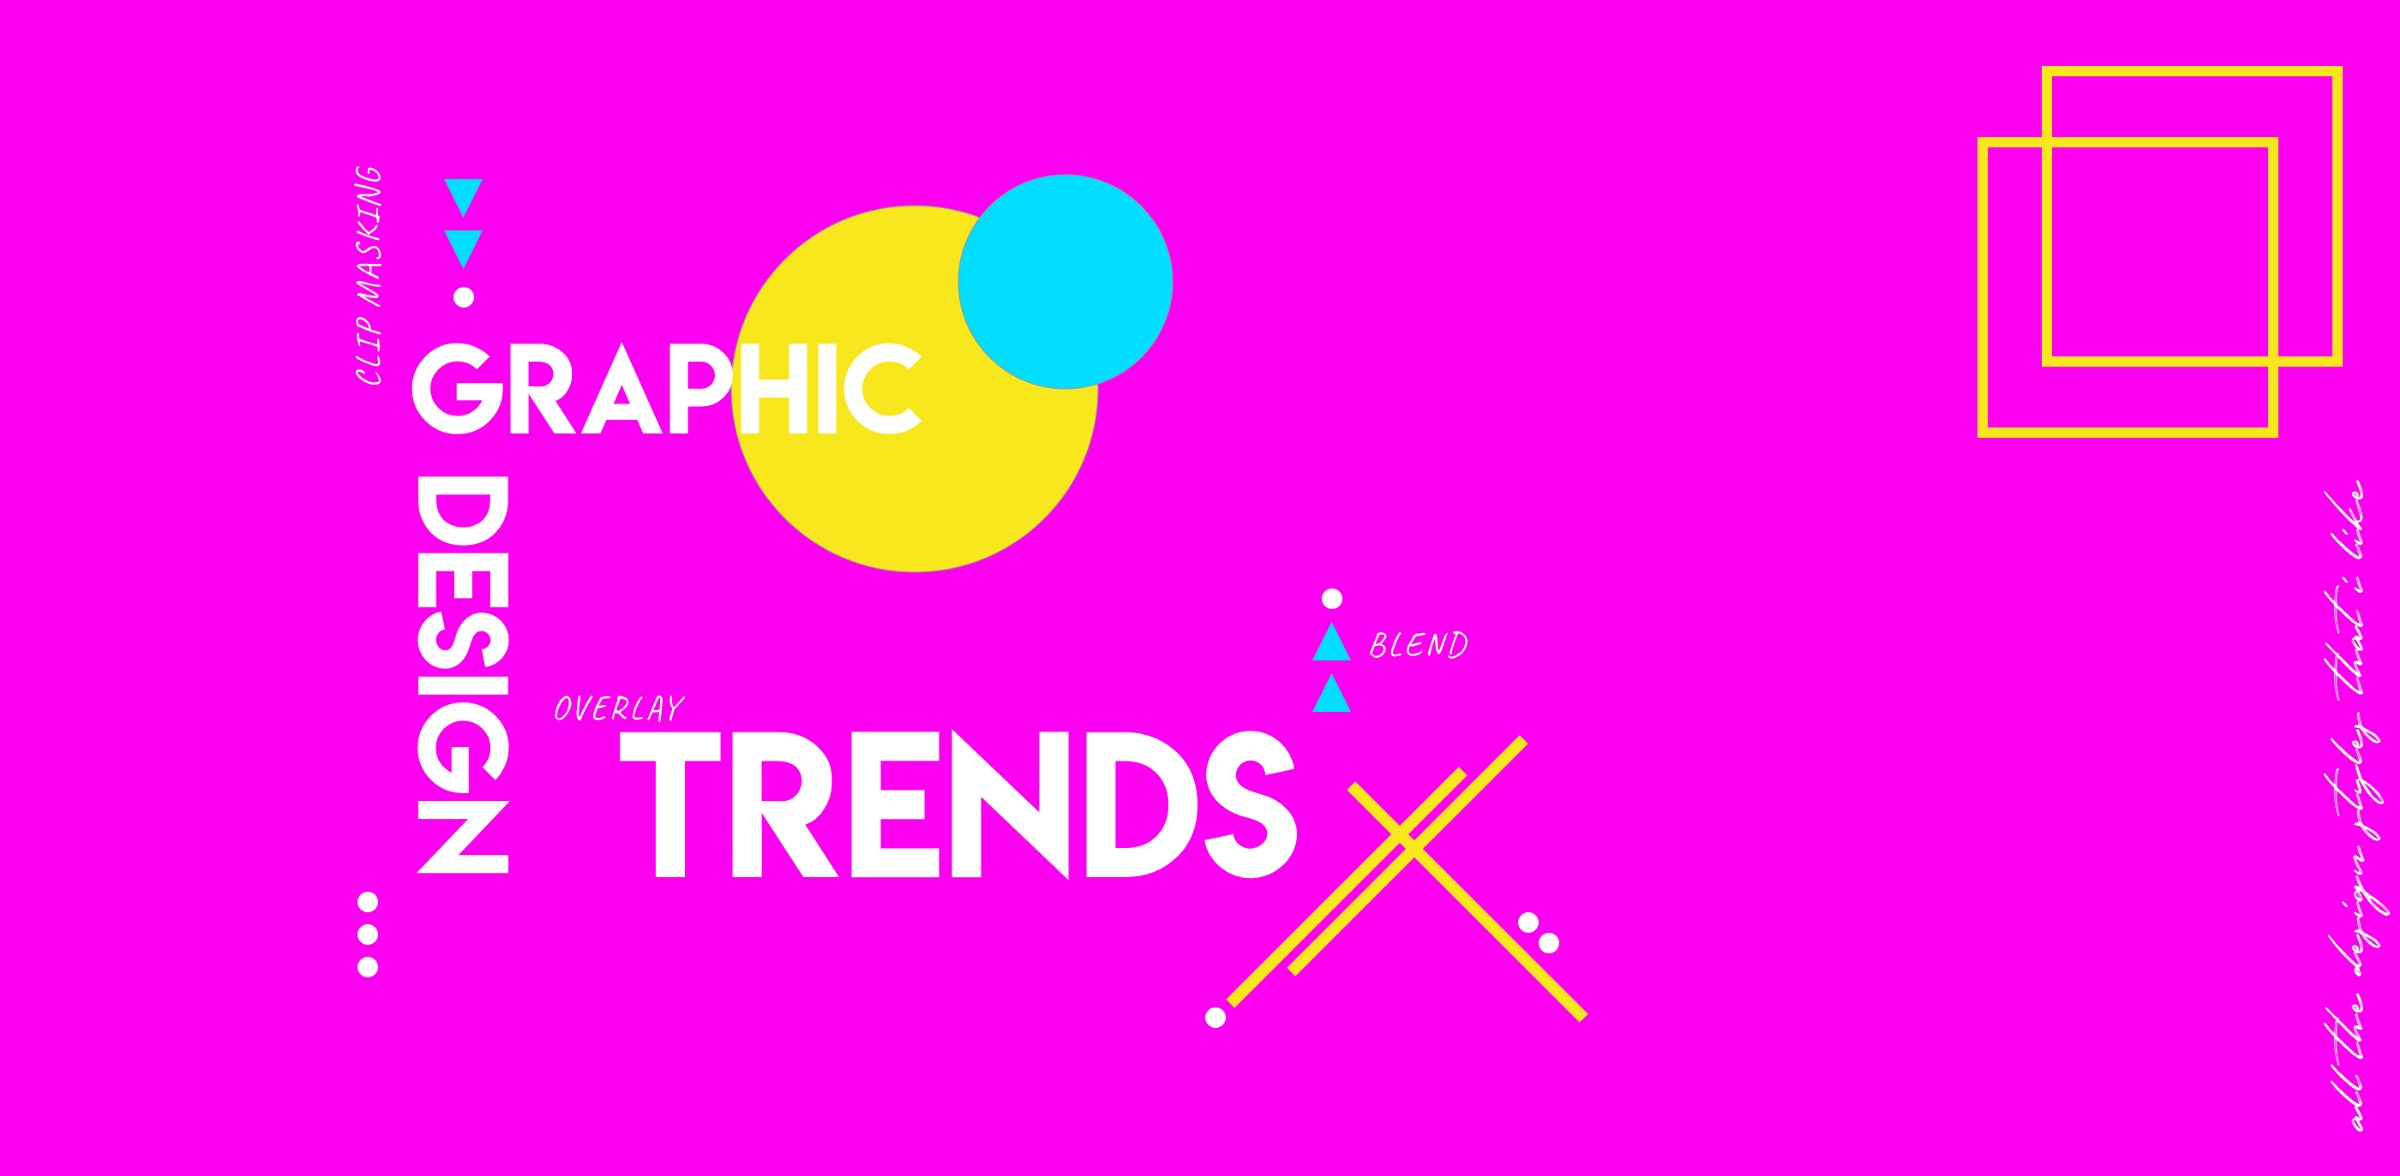 Design Trending Inspiration: 2019 Trends For Graphic Design